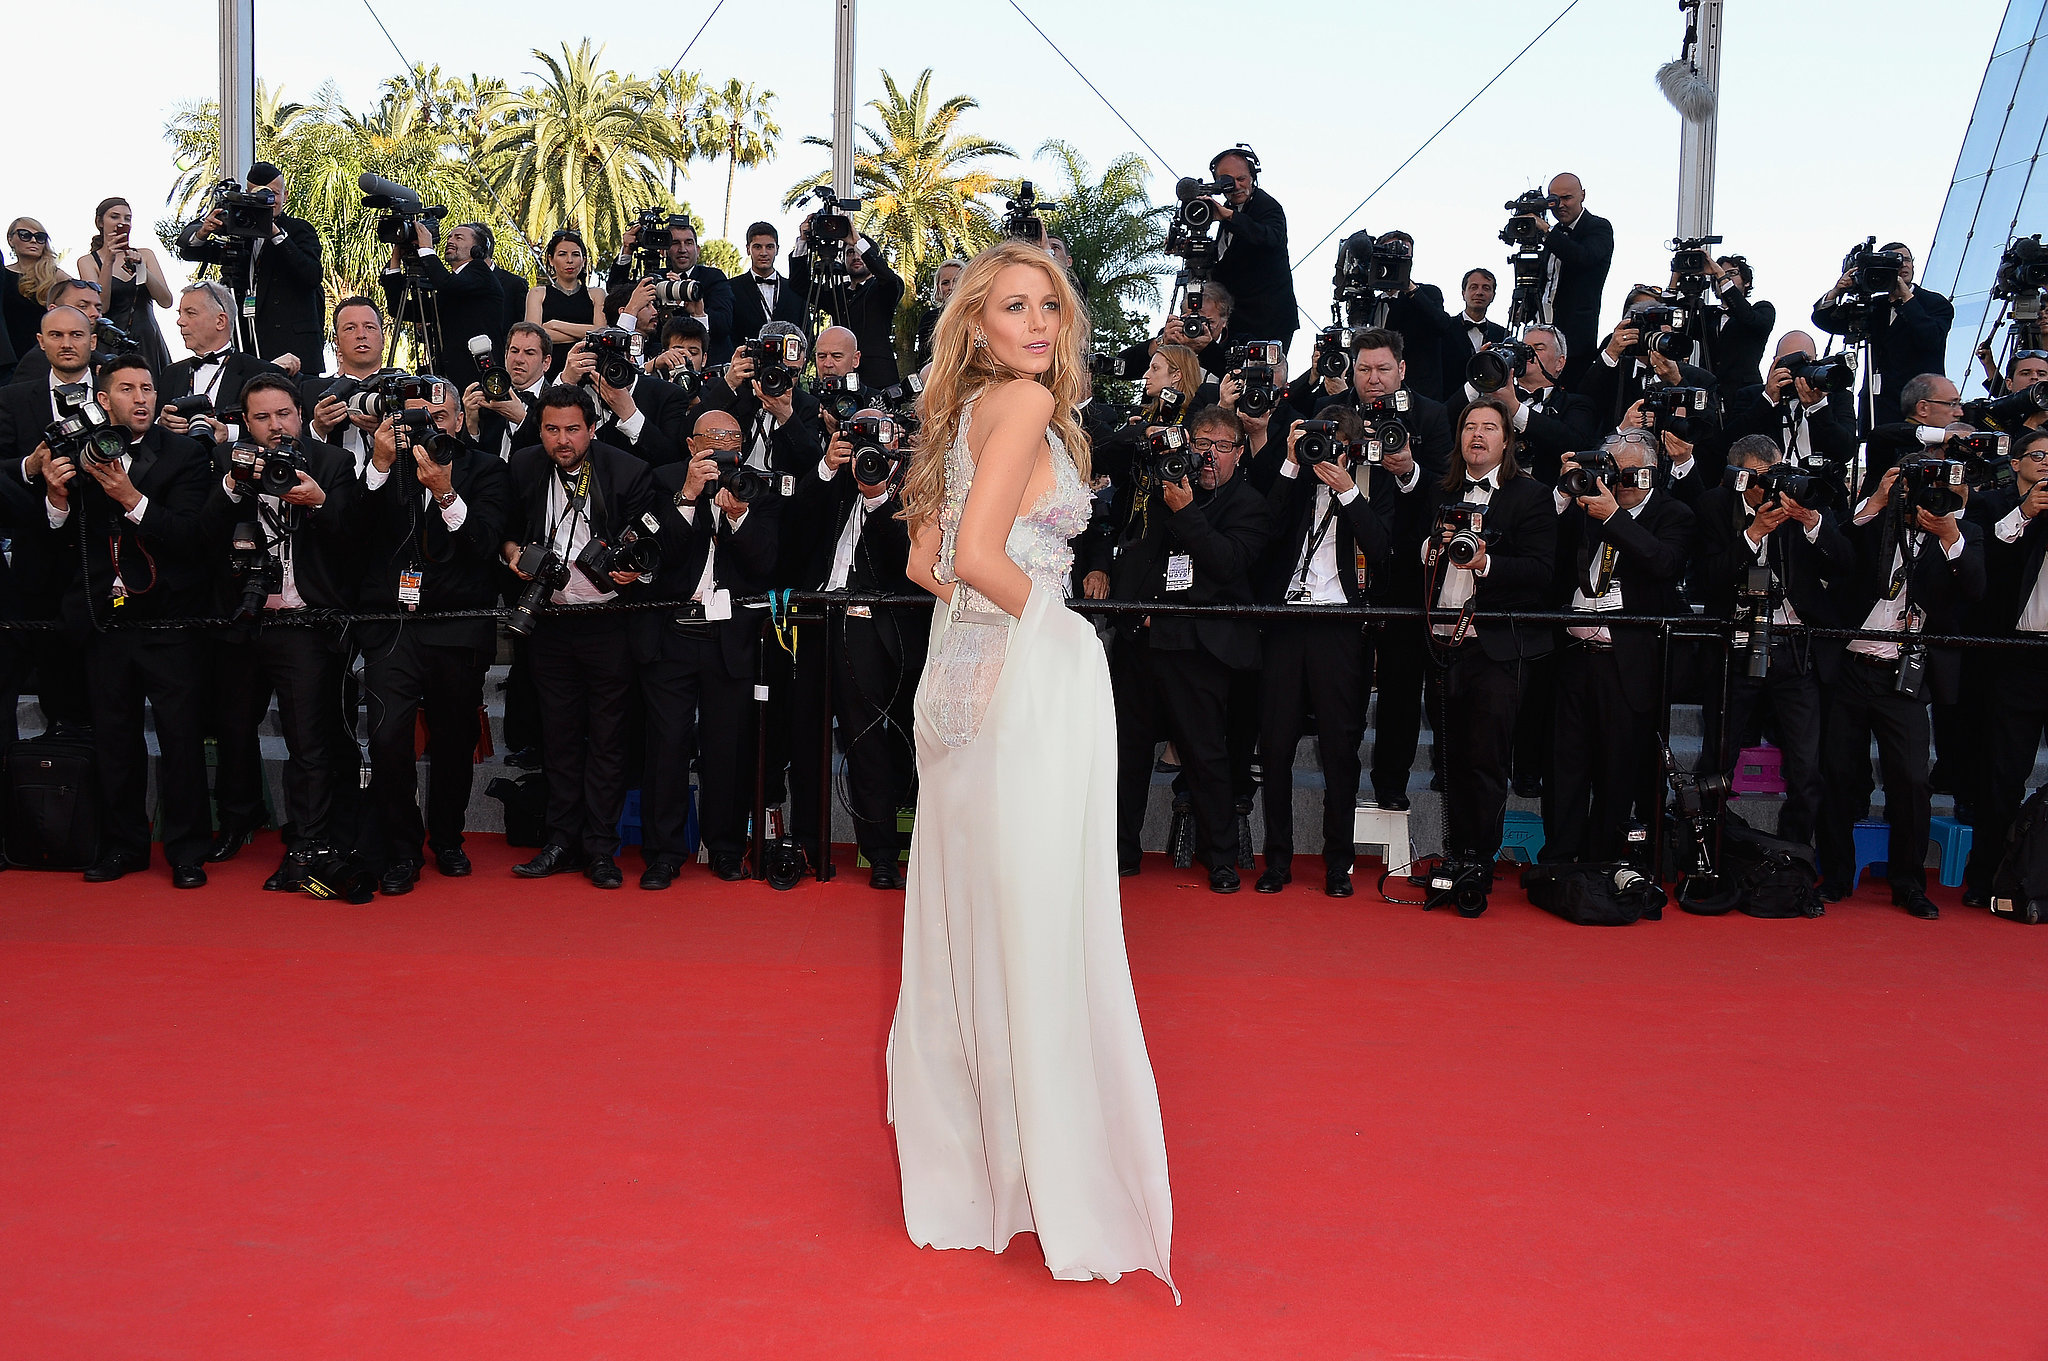 Blake Lively was the picture of glamour at the Mr. Turner premiere.